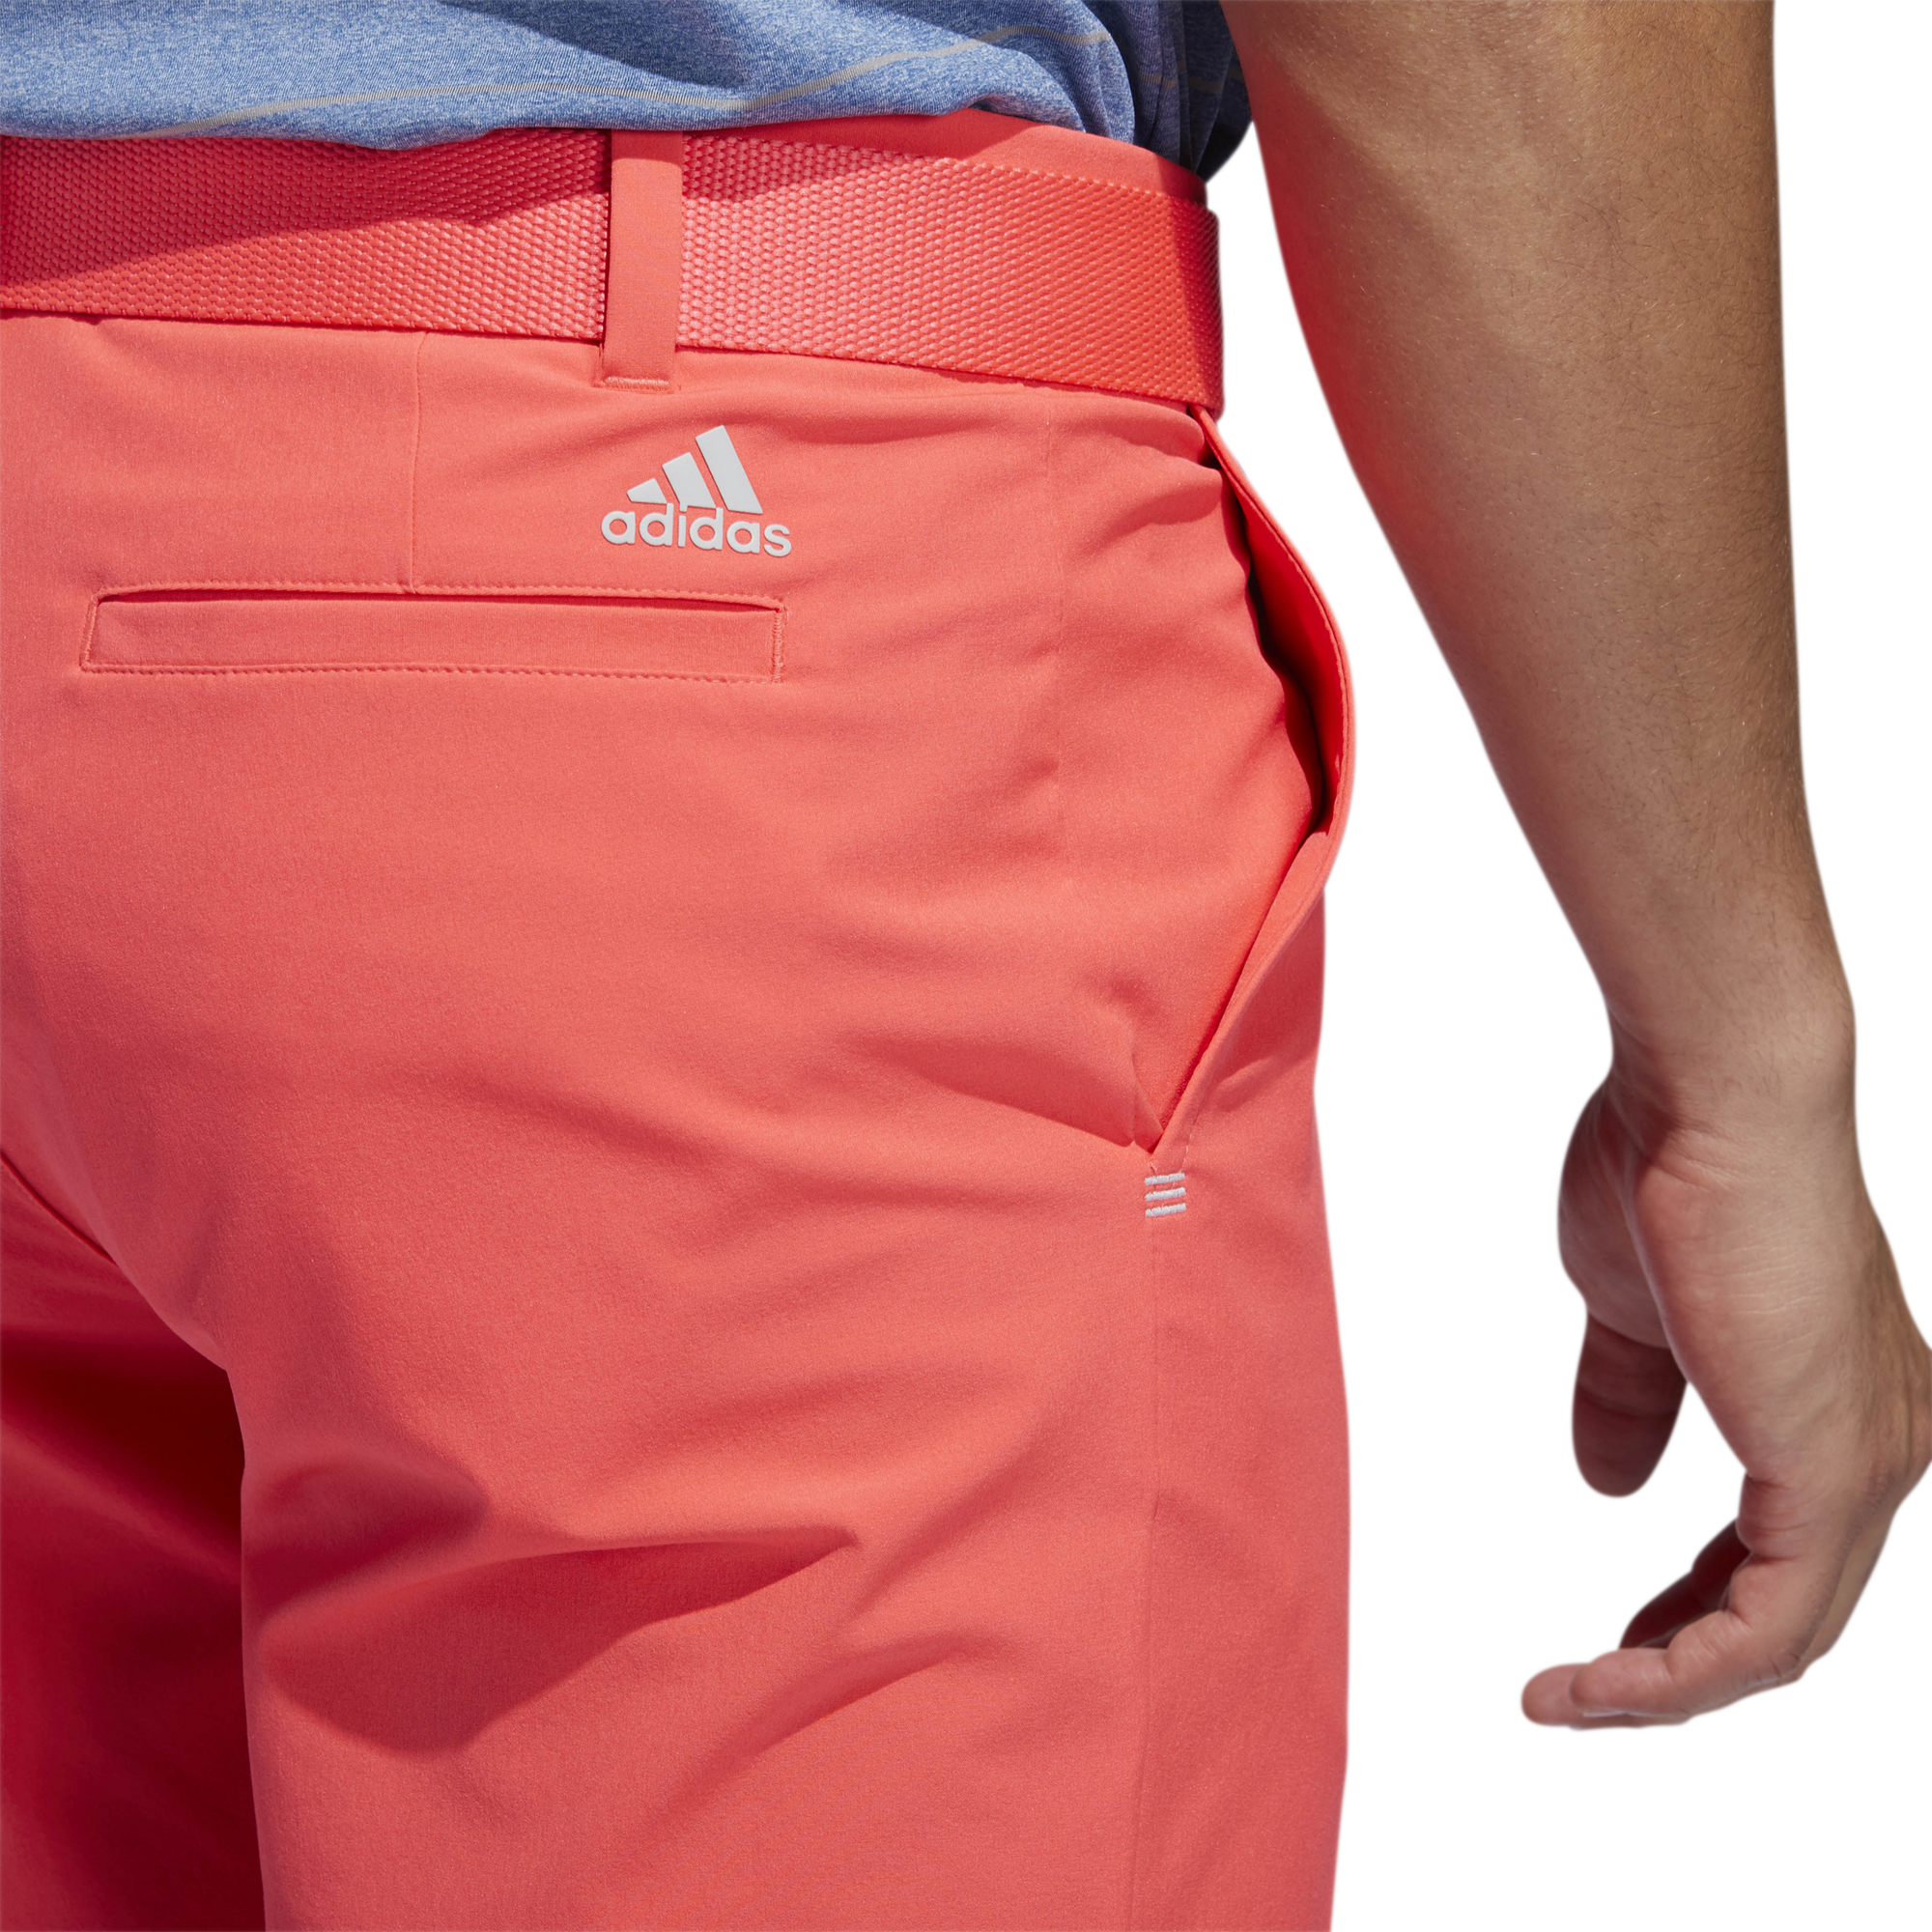 adidas-Golf-2020-Ultimate-365-Stretch-Mens-Golf-Shorts-10-5-034-Inseam thumbnail 32